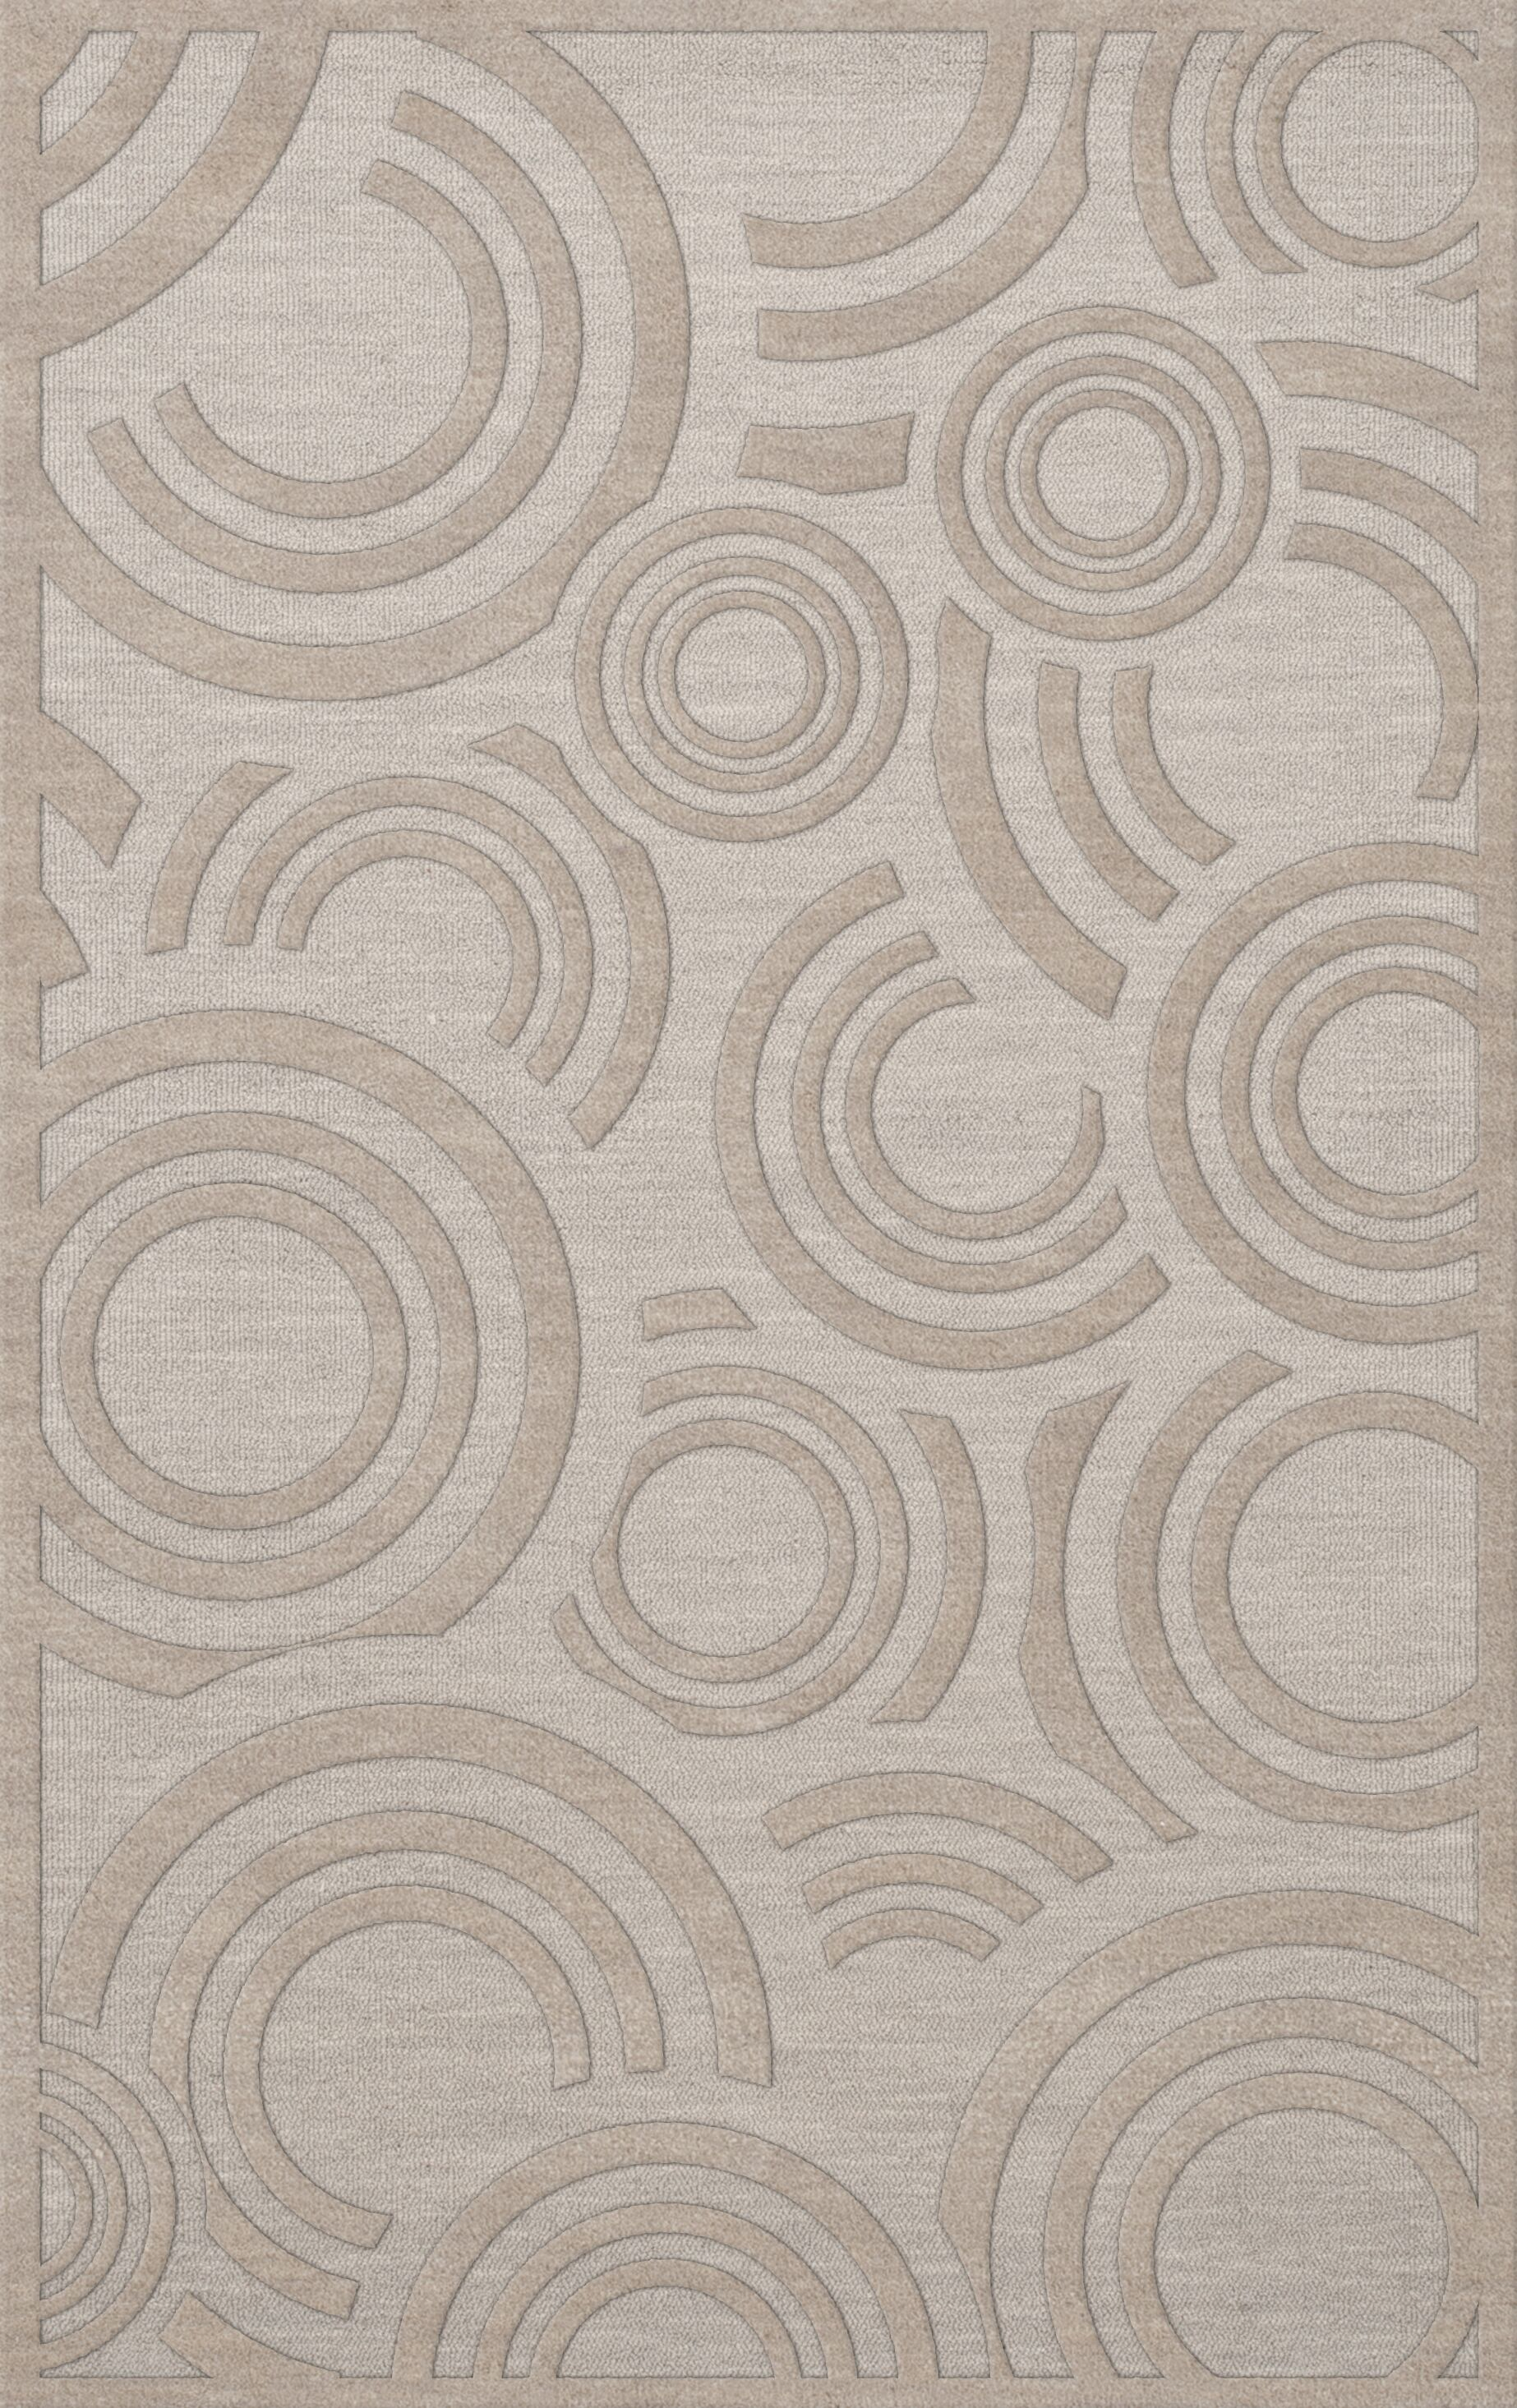 Dover Tufted Wool Putty Area Rug Rug Size: Rectangle 10' x 14'